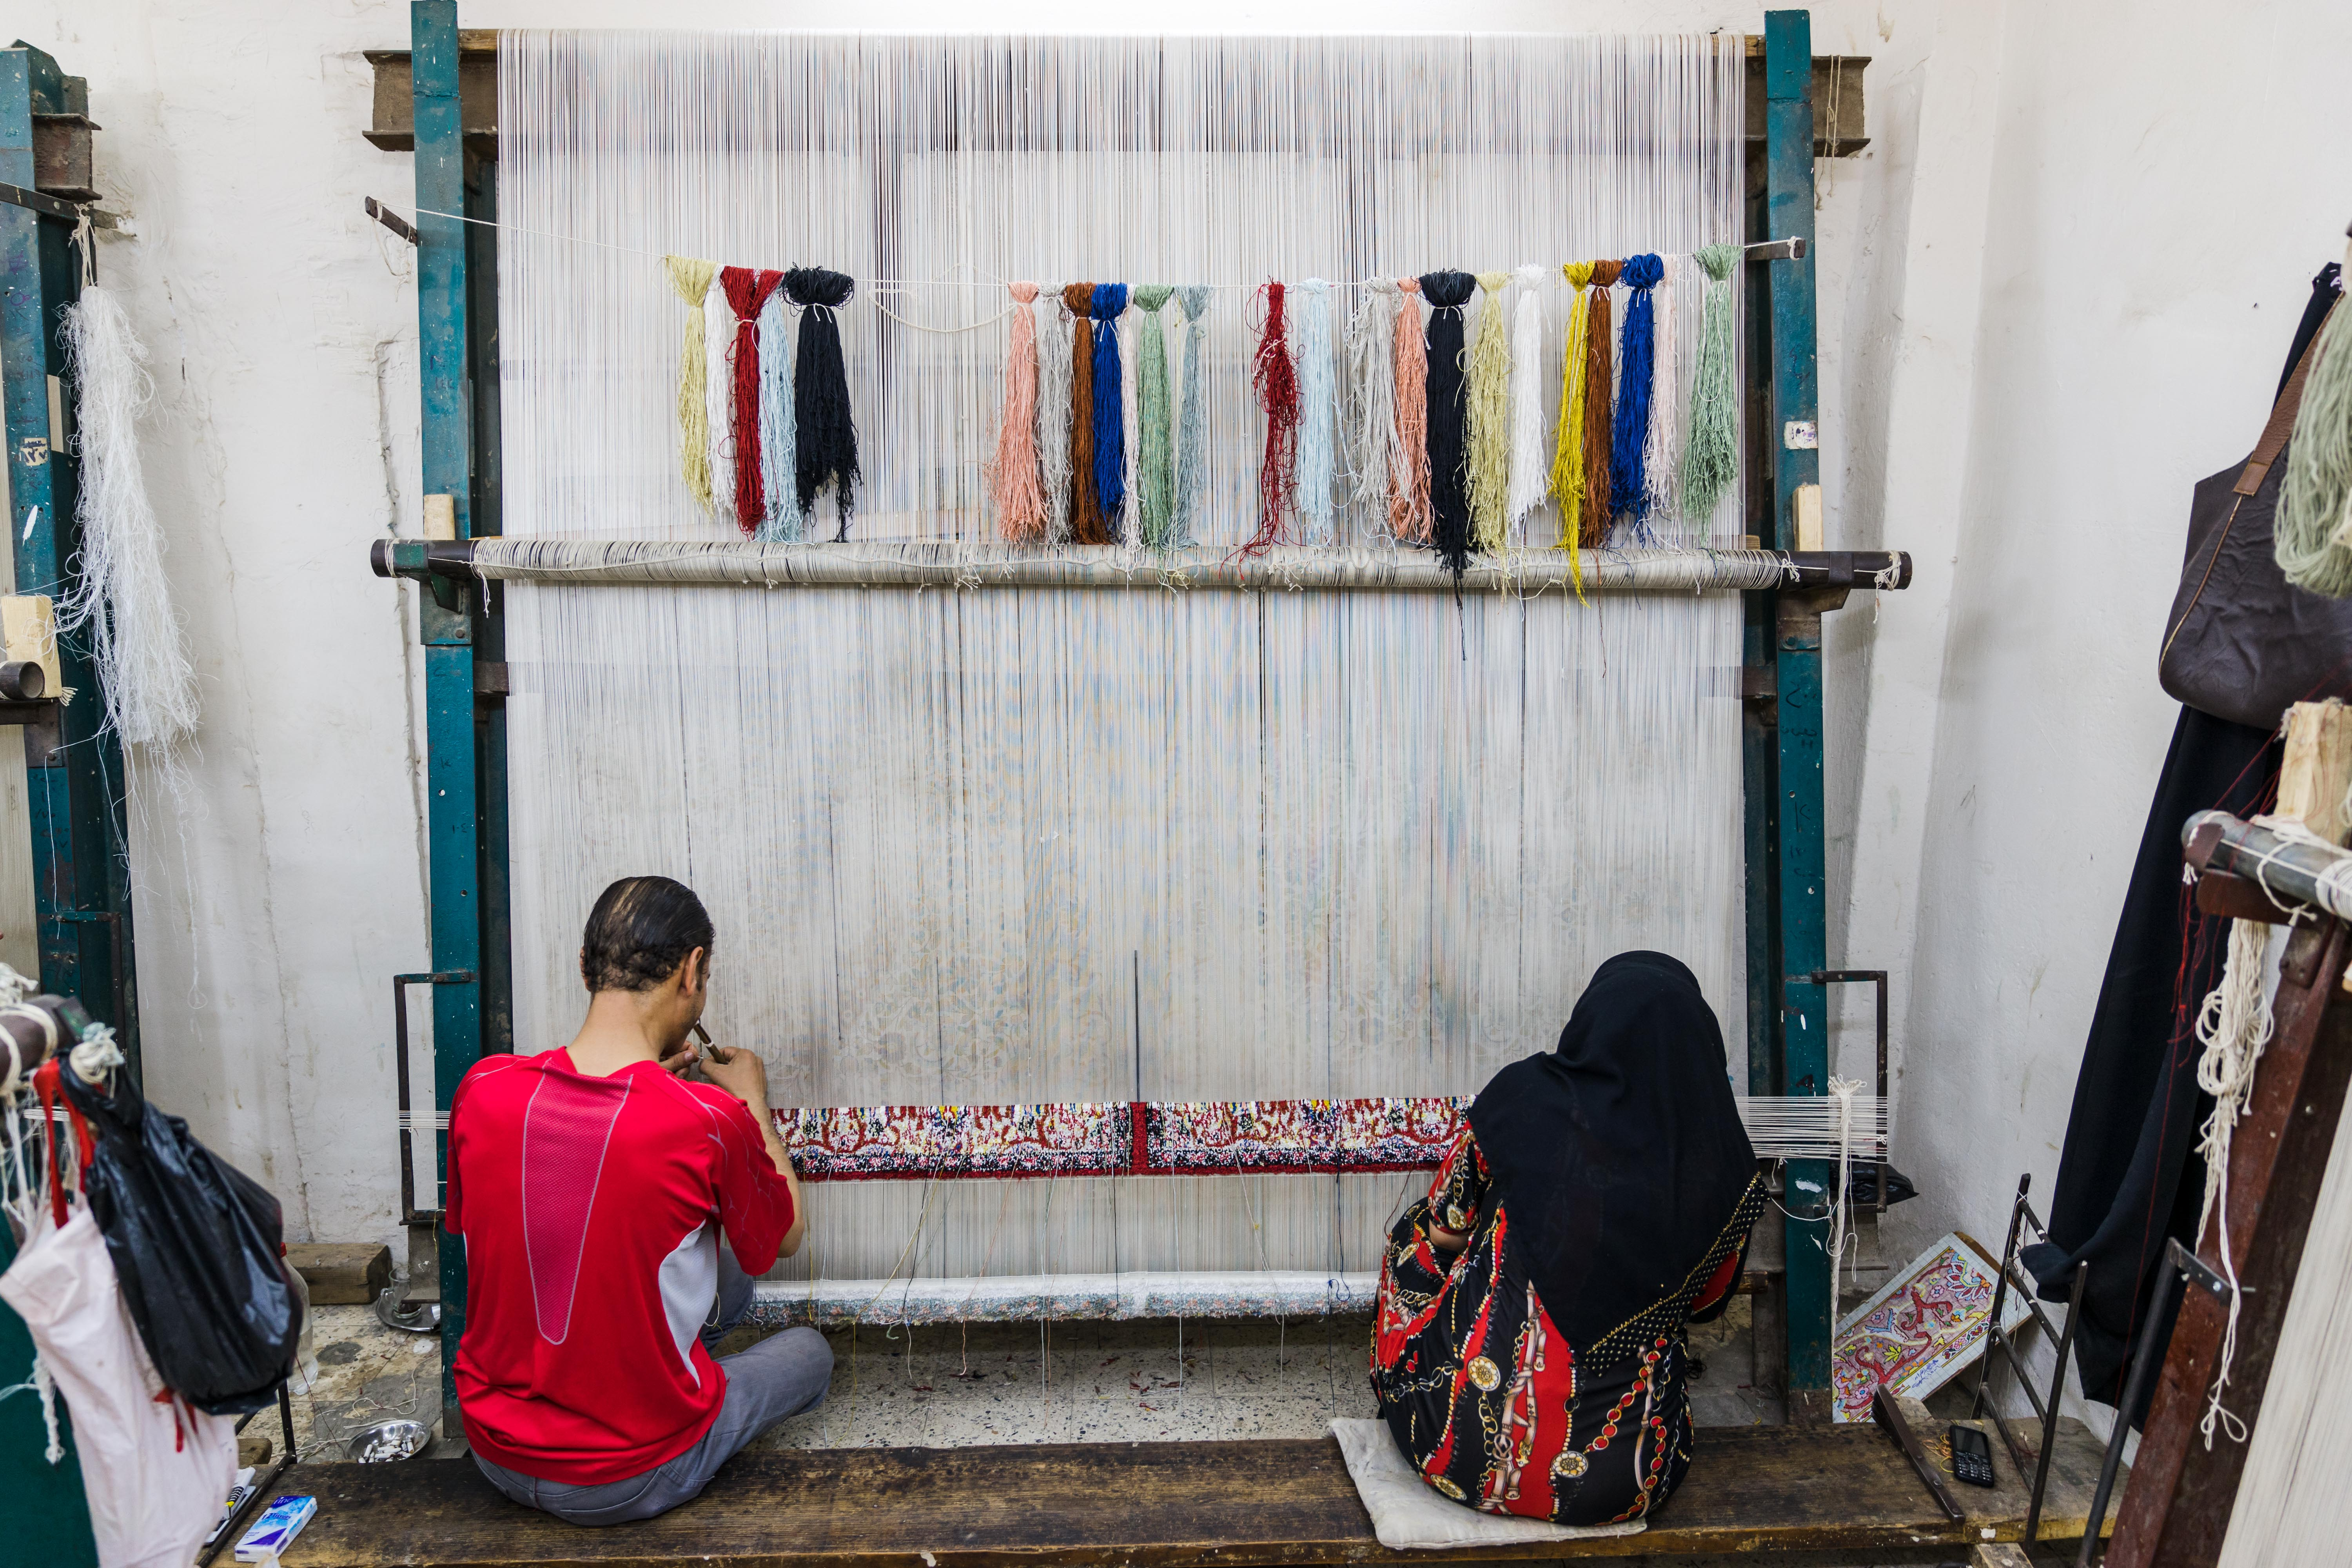 It takes two people working eight hours a day, six days a week, six months to produce a carpet this size.